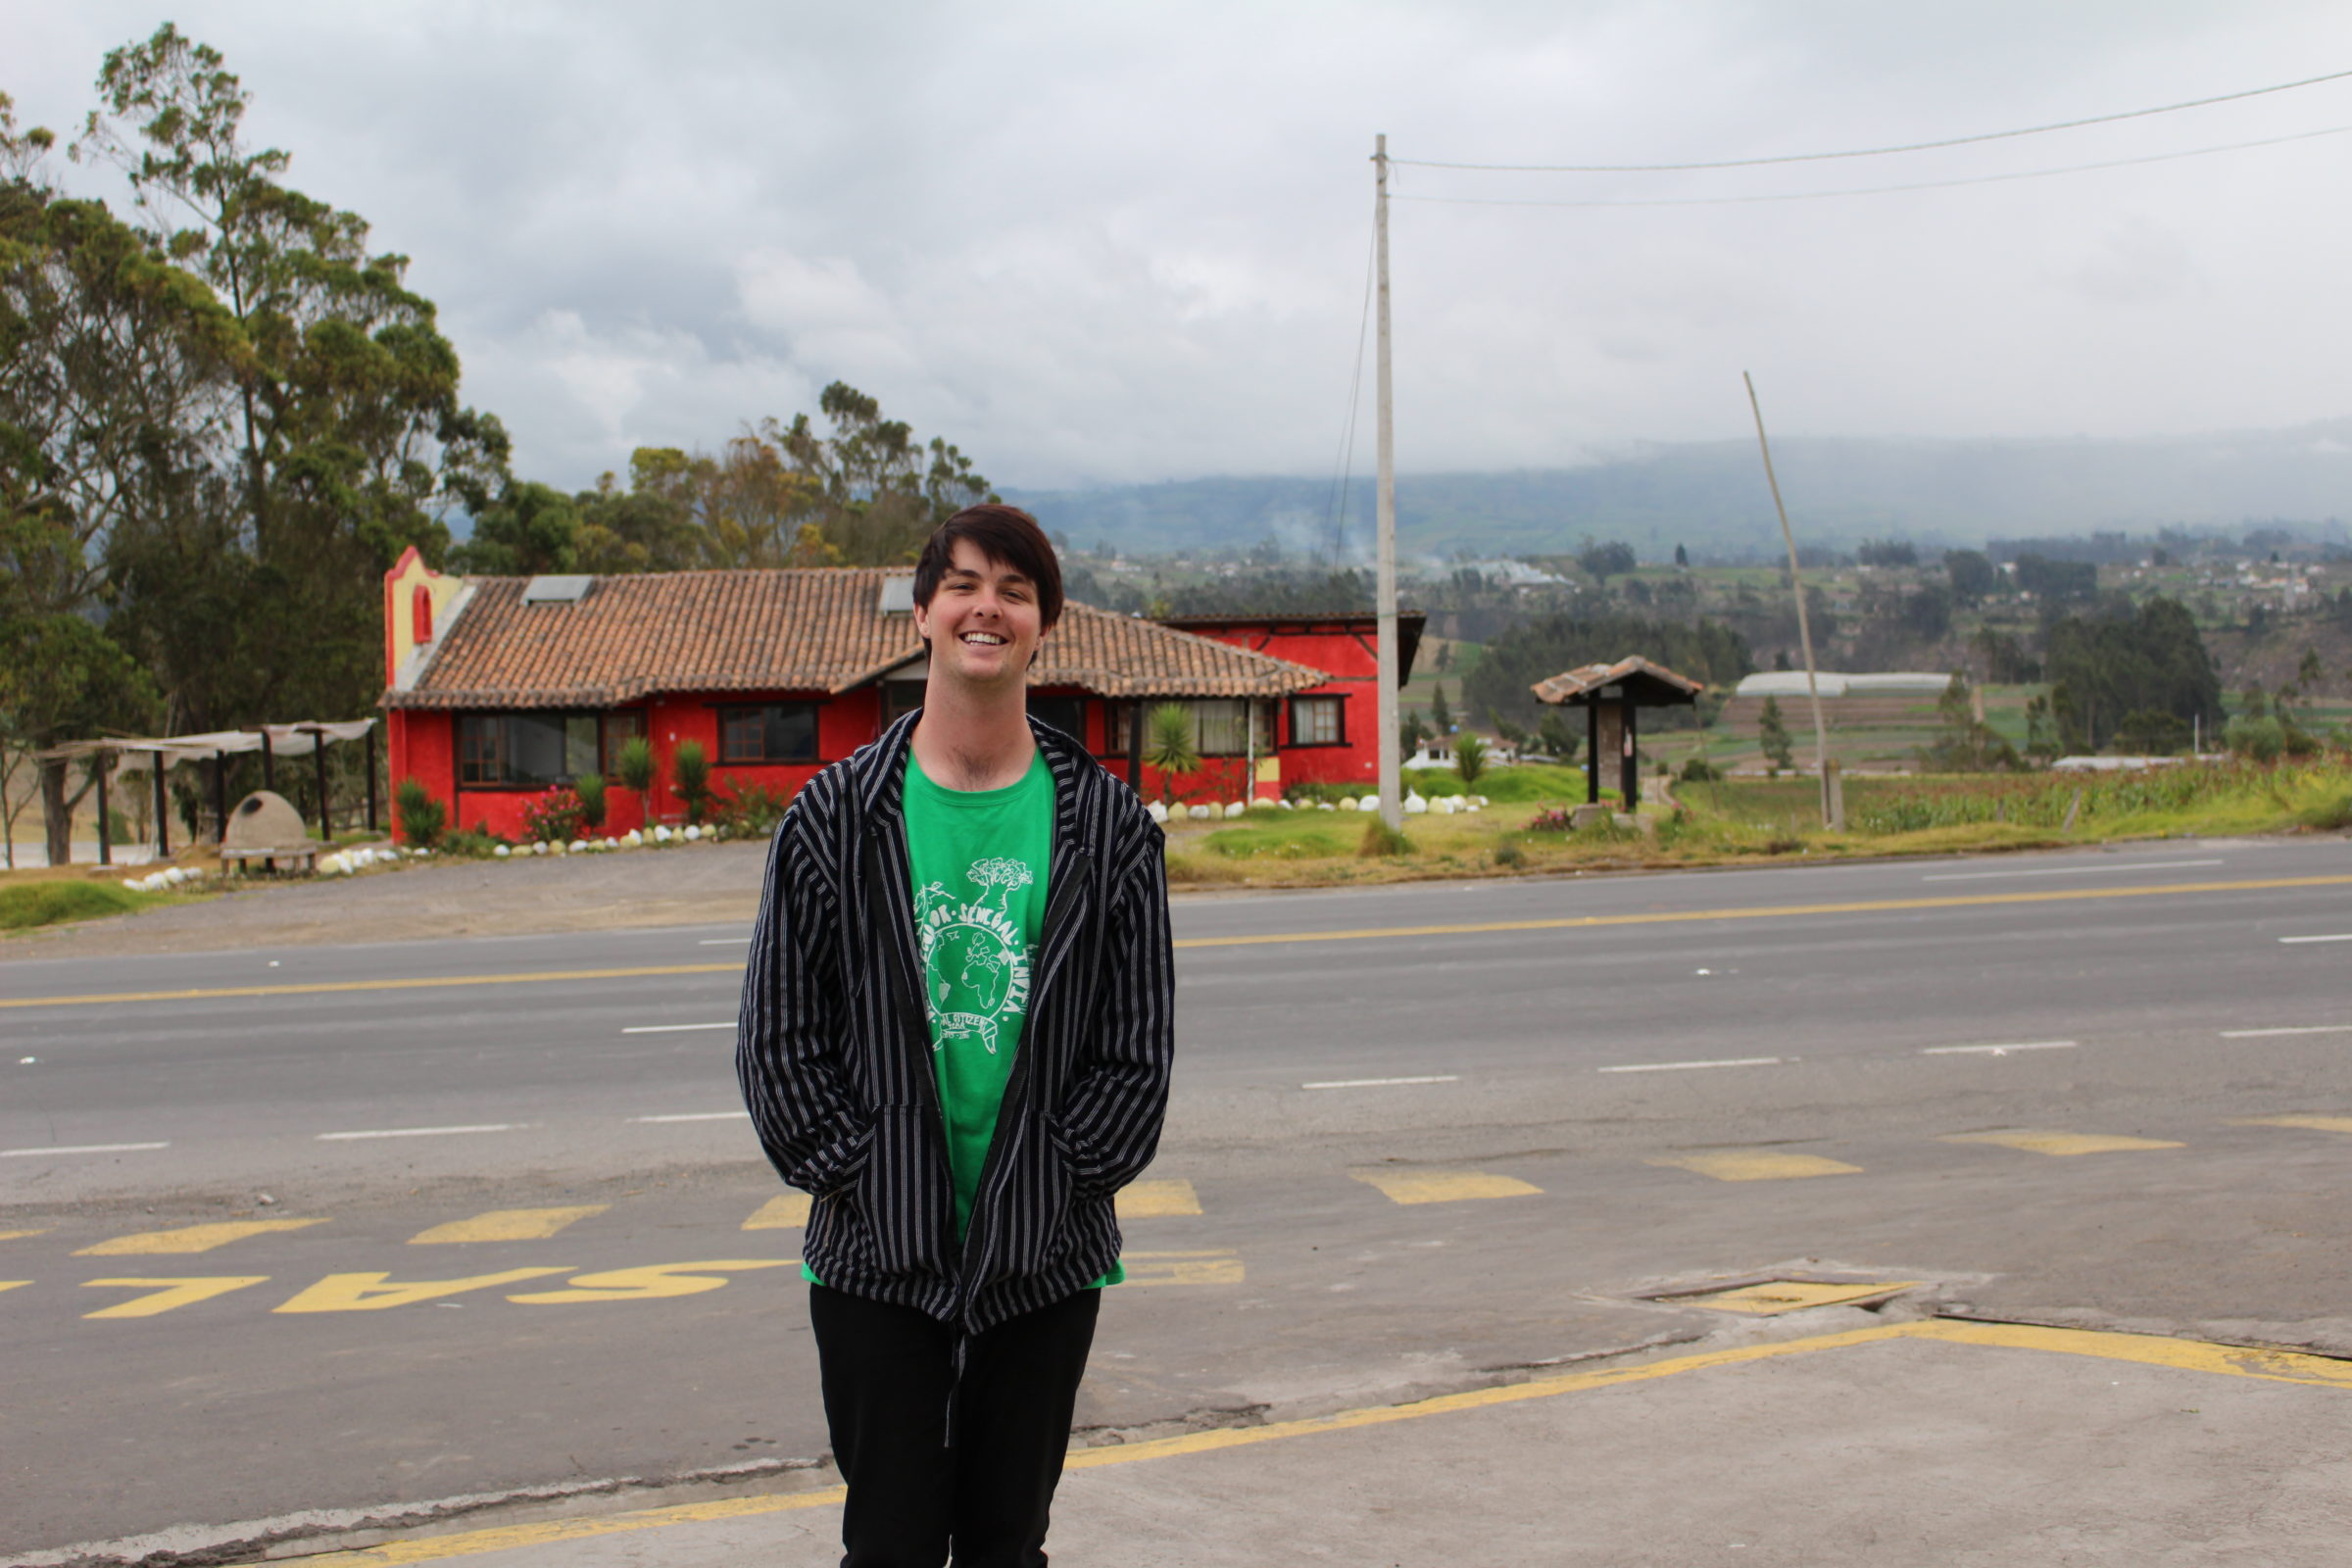 The Struggle with Sexuality: An Article from an Openly Gay Individual Living in Ecuador